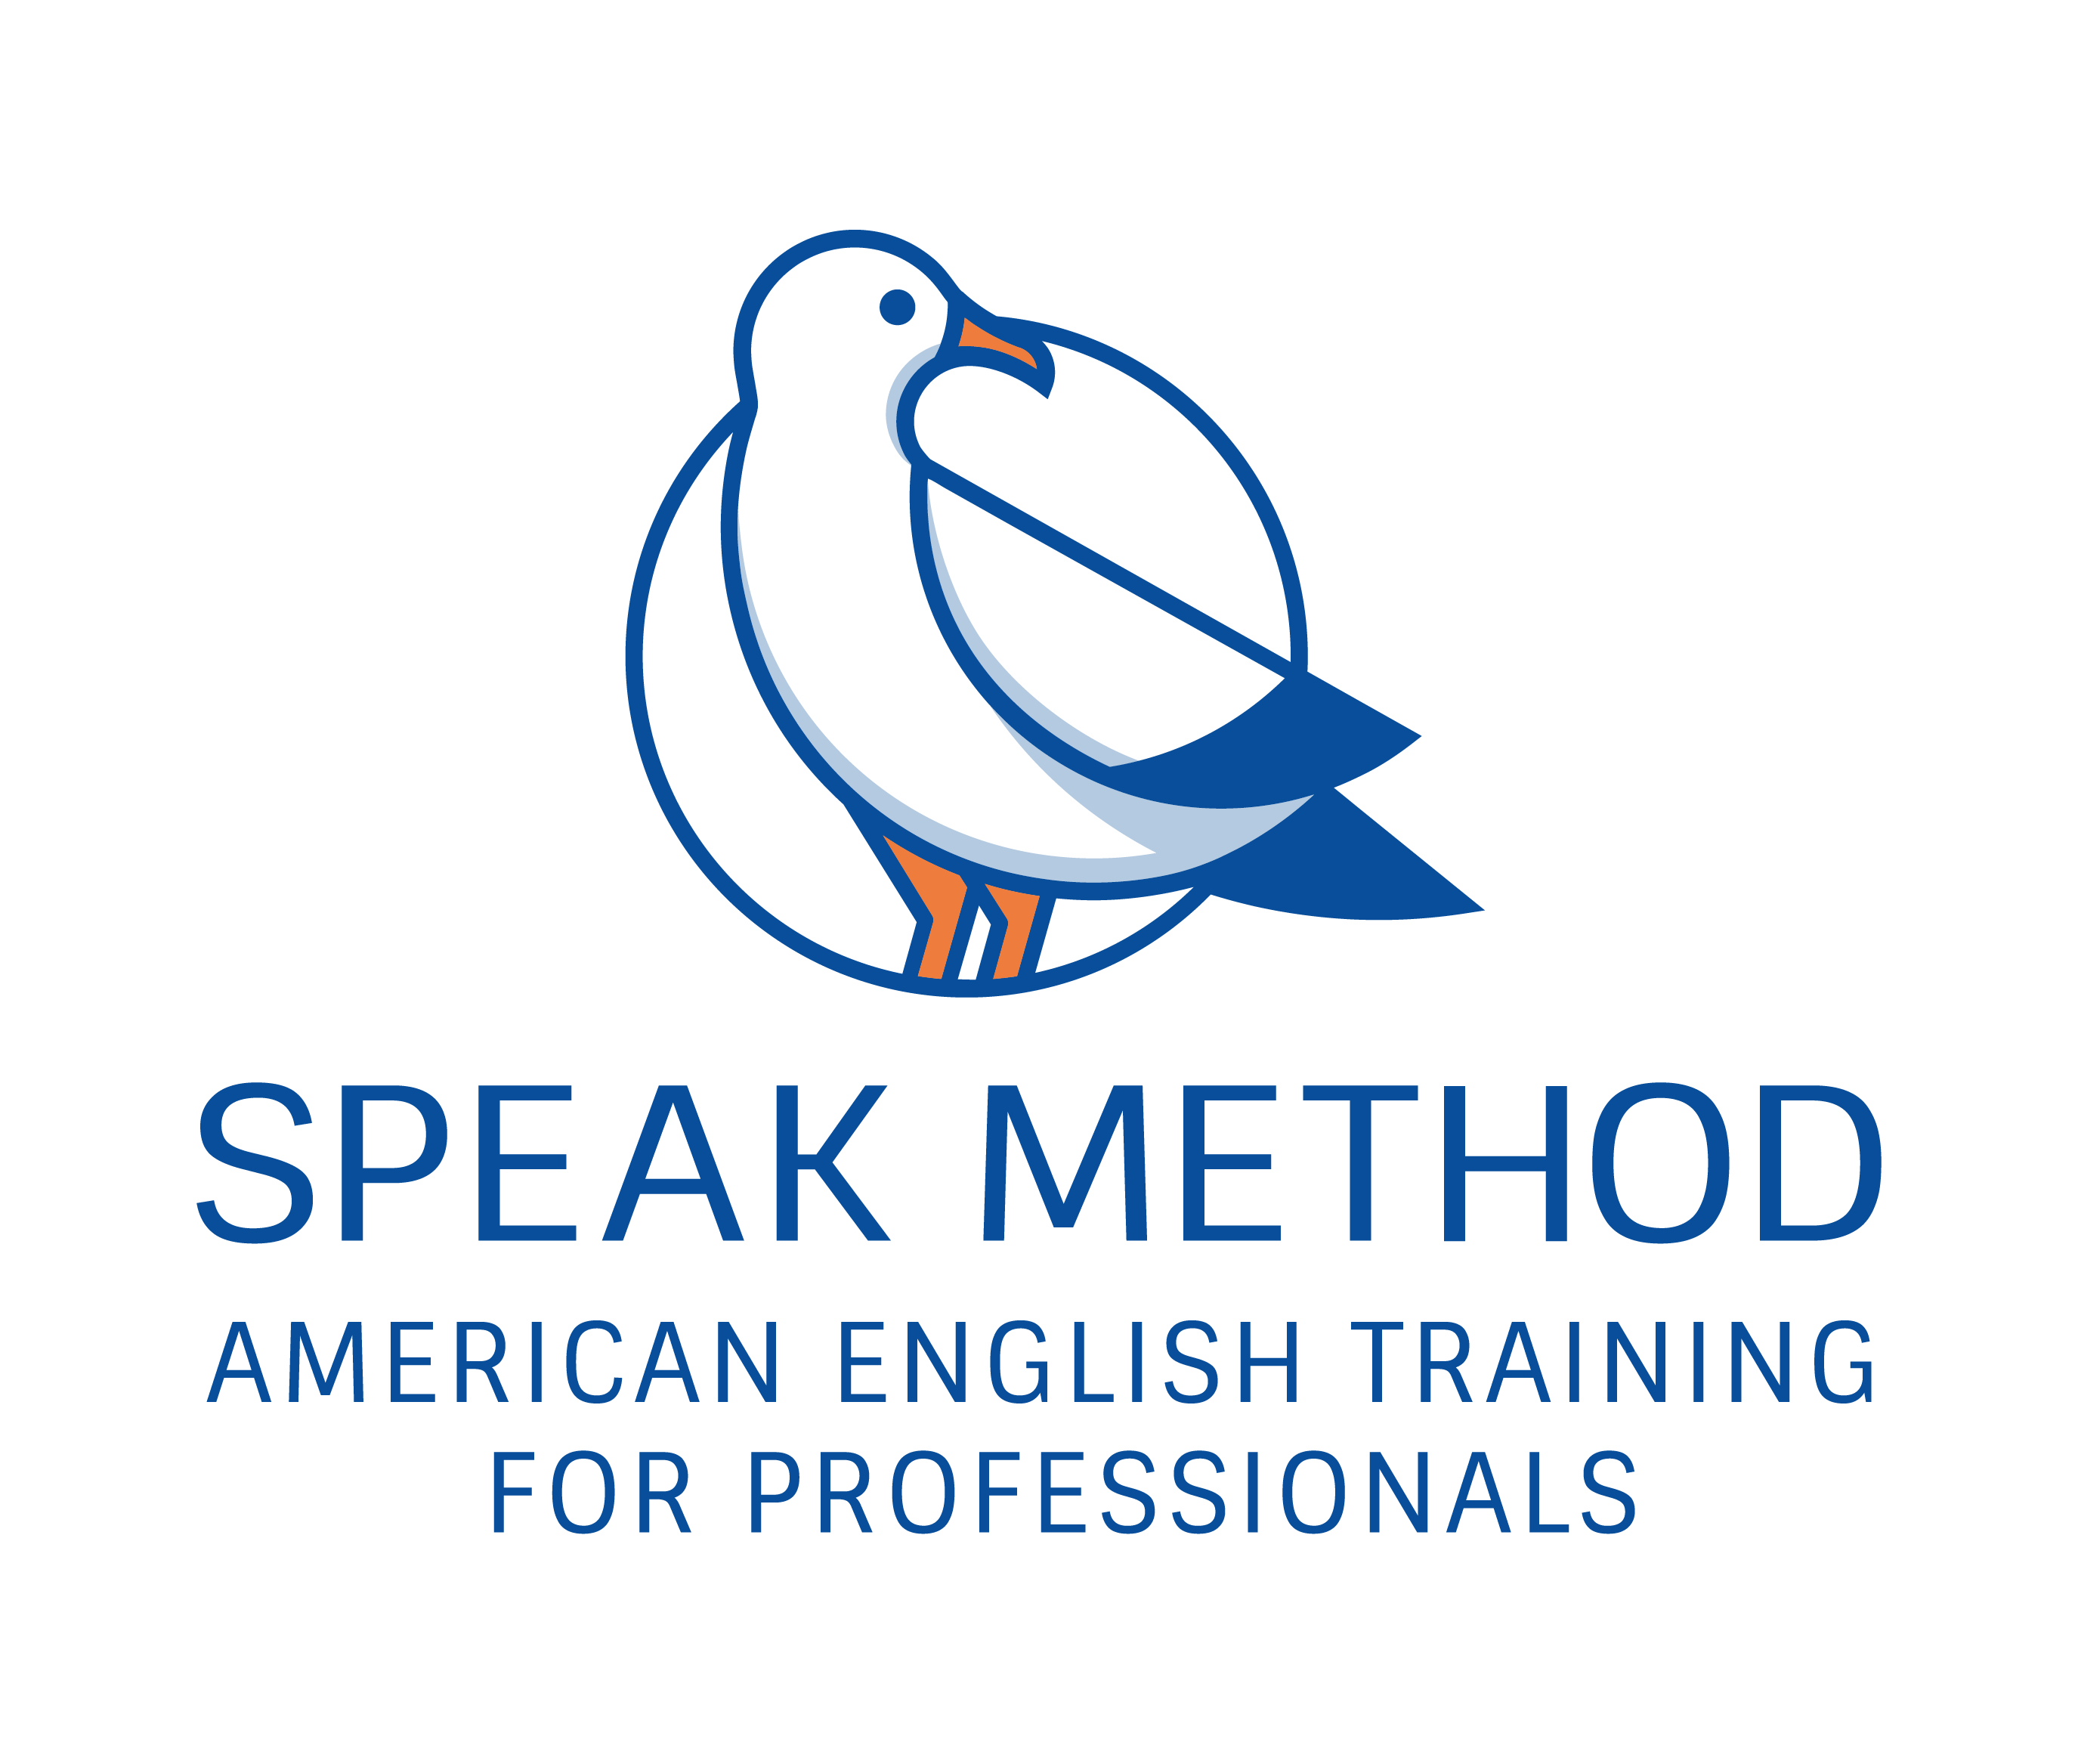 speak method